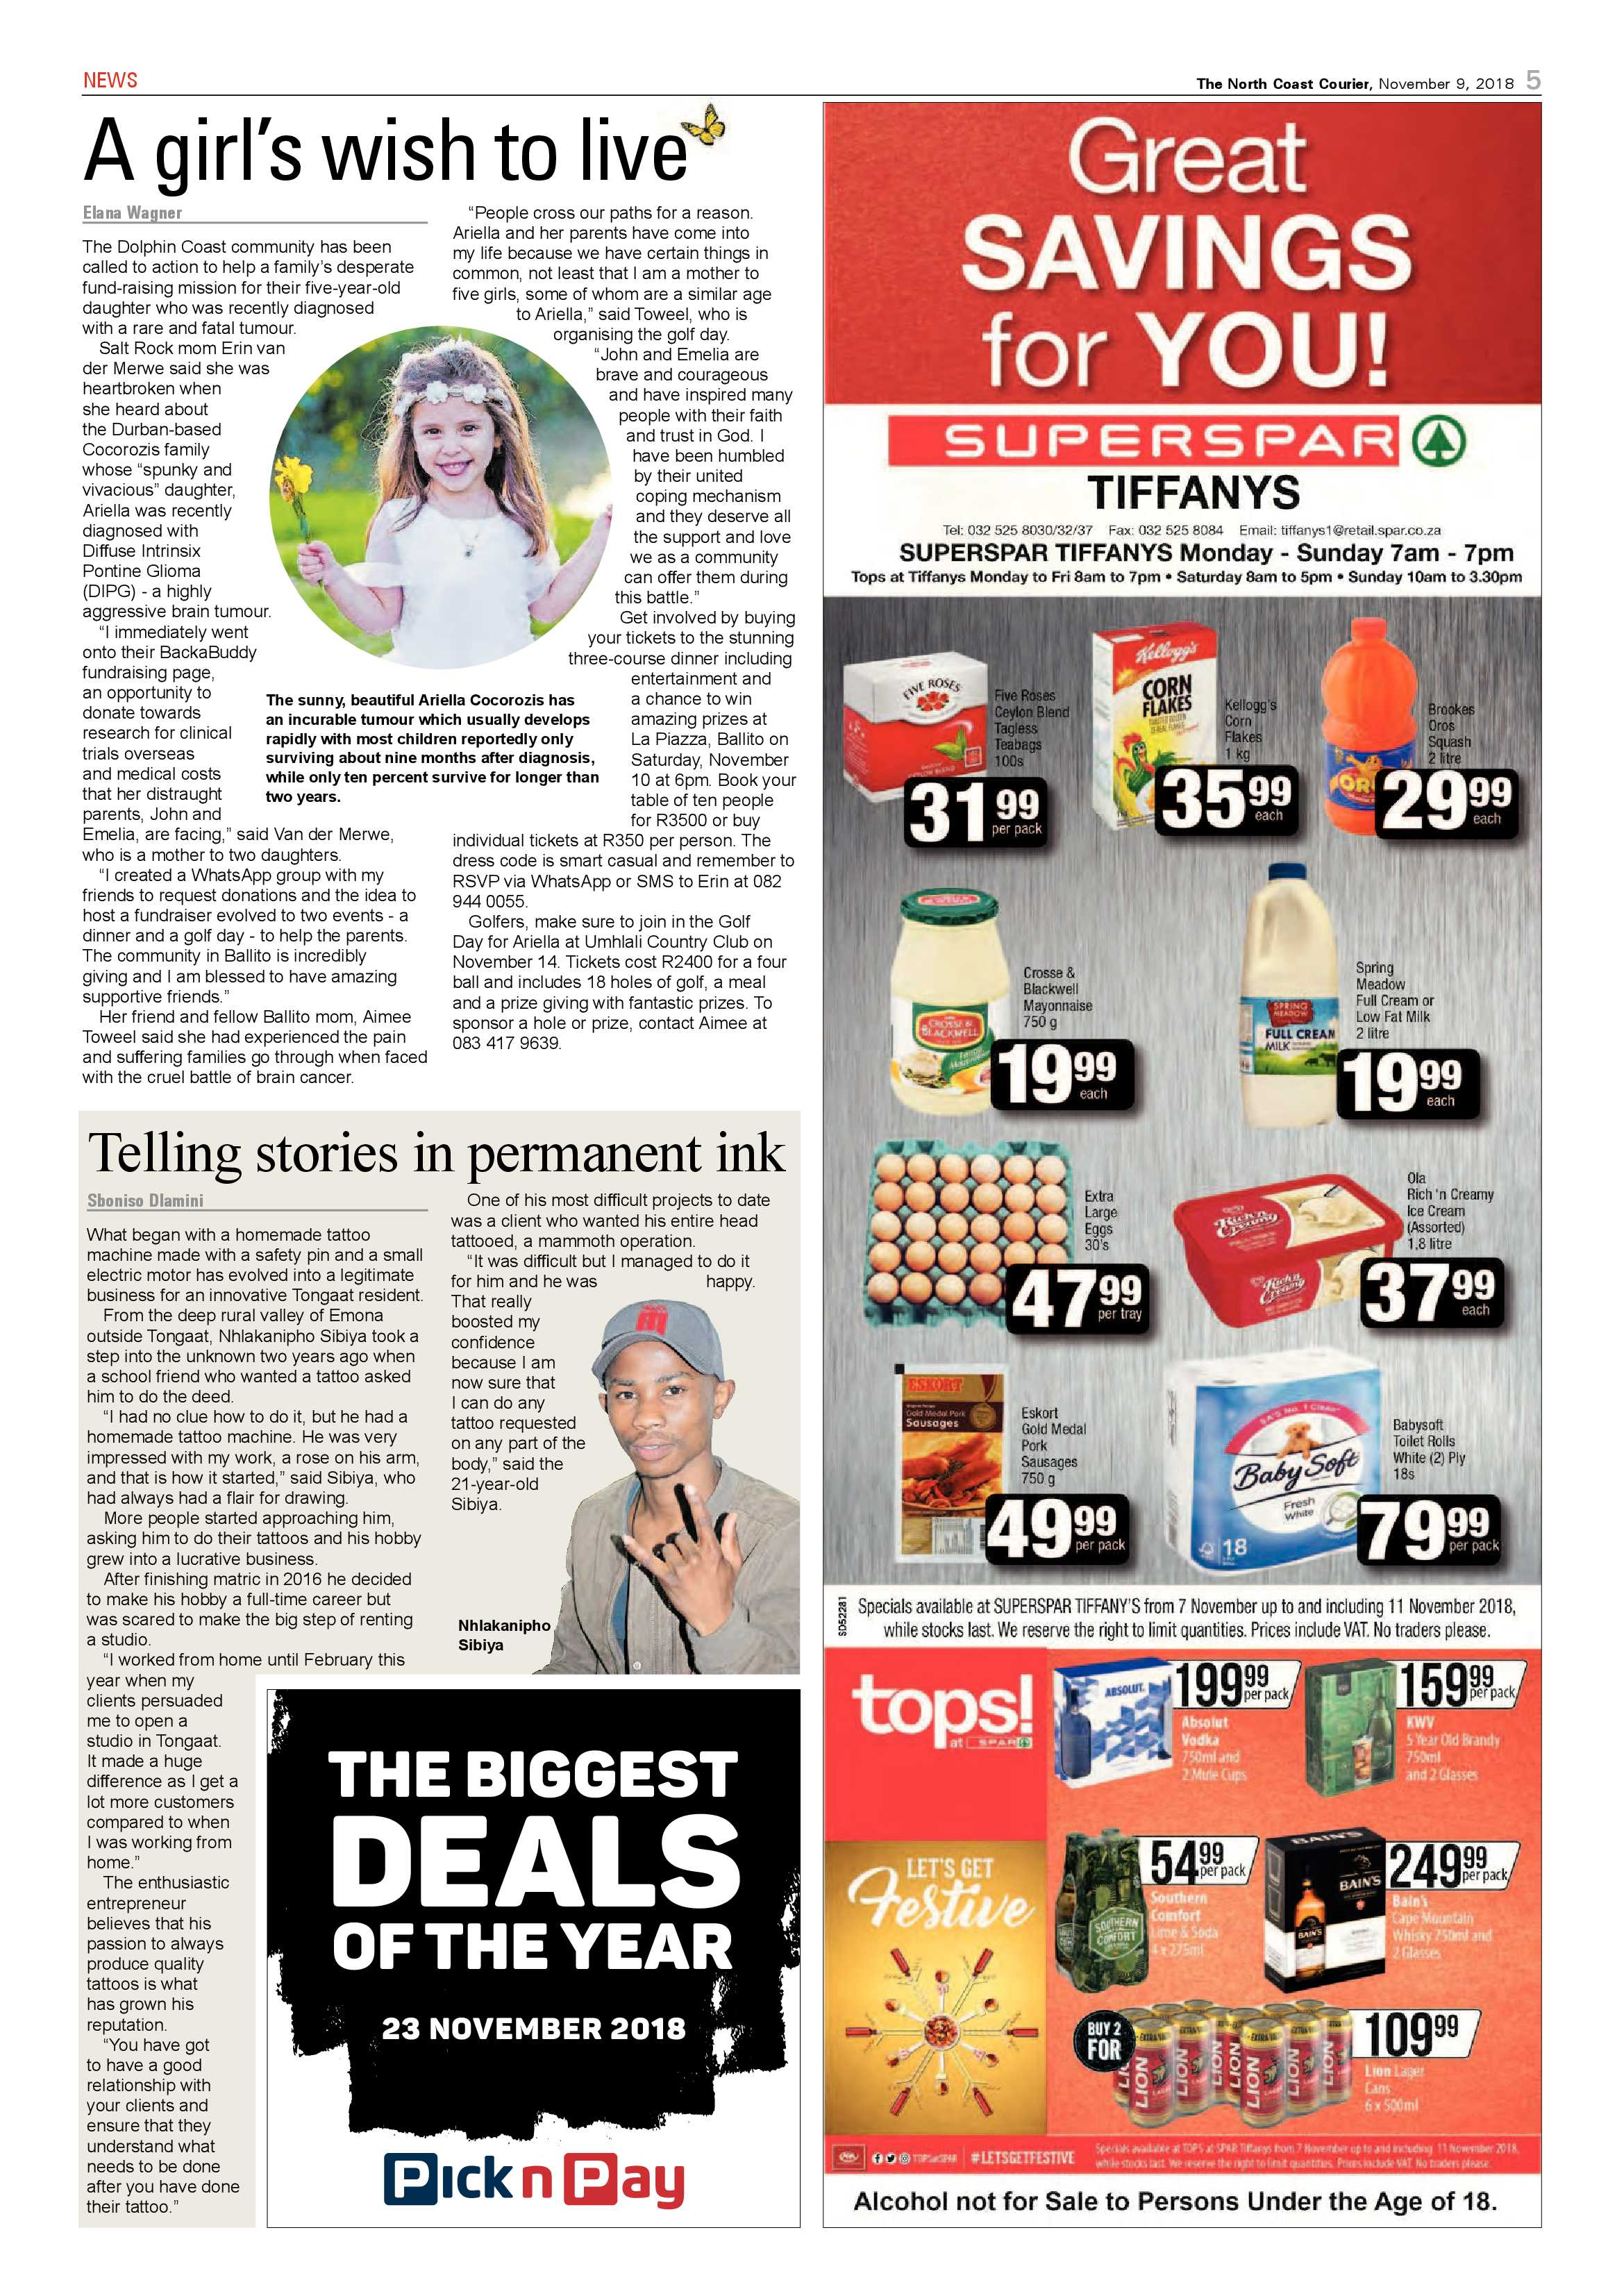 north-coast-courier-09-november-2018-epapers-page-5